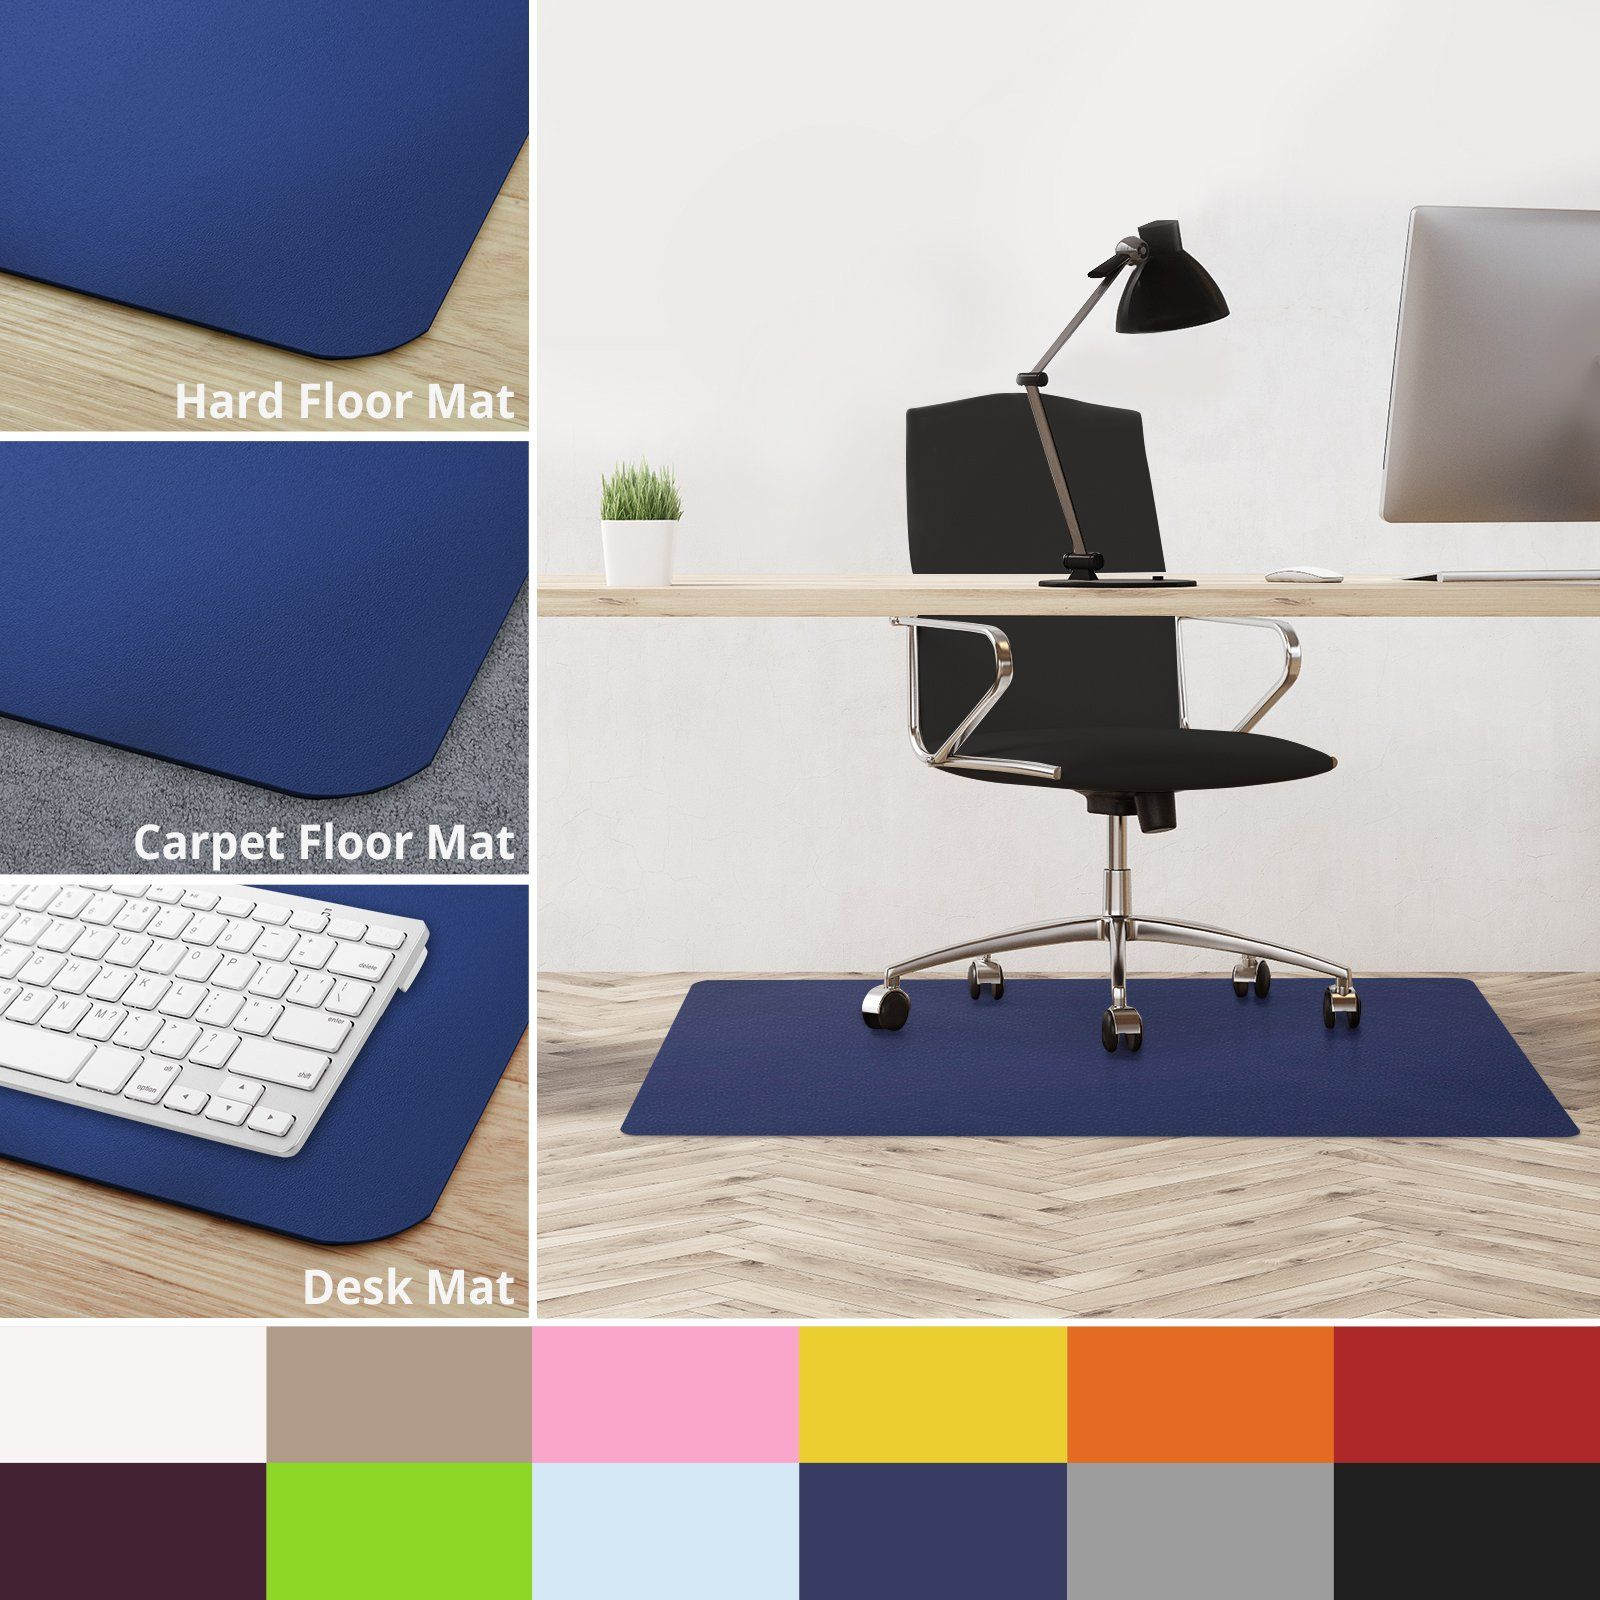 Chair Mat For Hardwood Floors Pool Float Chairs Casa Pura Office Floor 30x48 Desk Hard Matsdark Blue Bpa Free Odorless Matching Mats Available Read More Reviews Of The